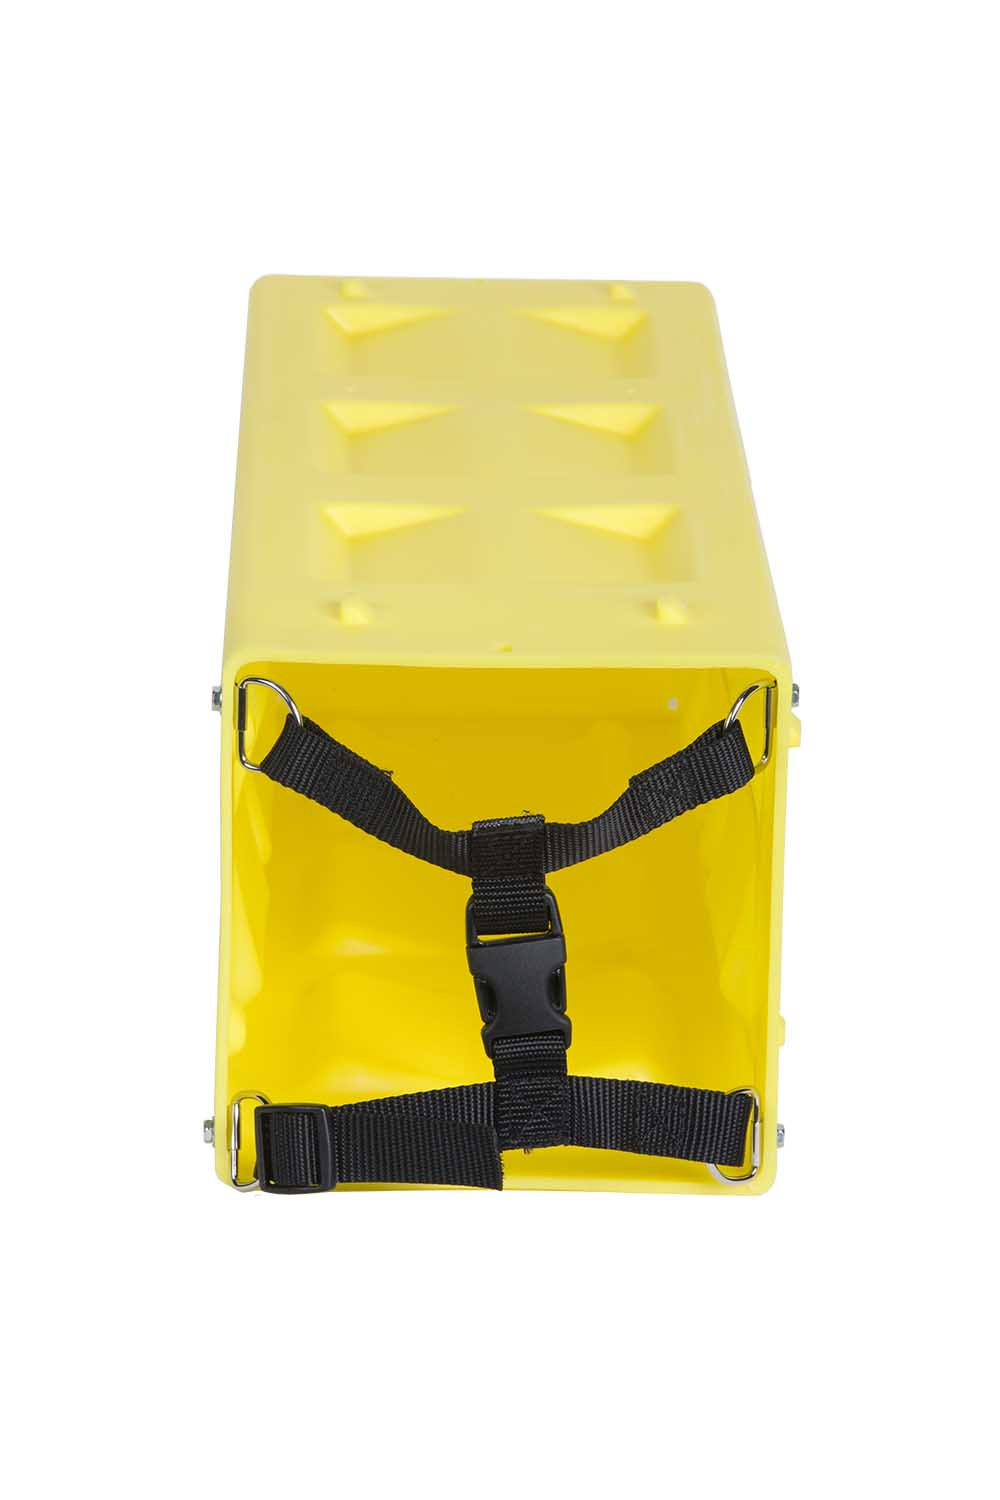 Plastic Air Cylinder Rack – Yellow